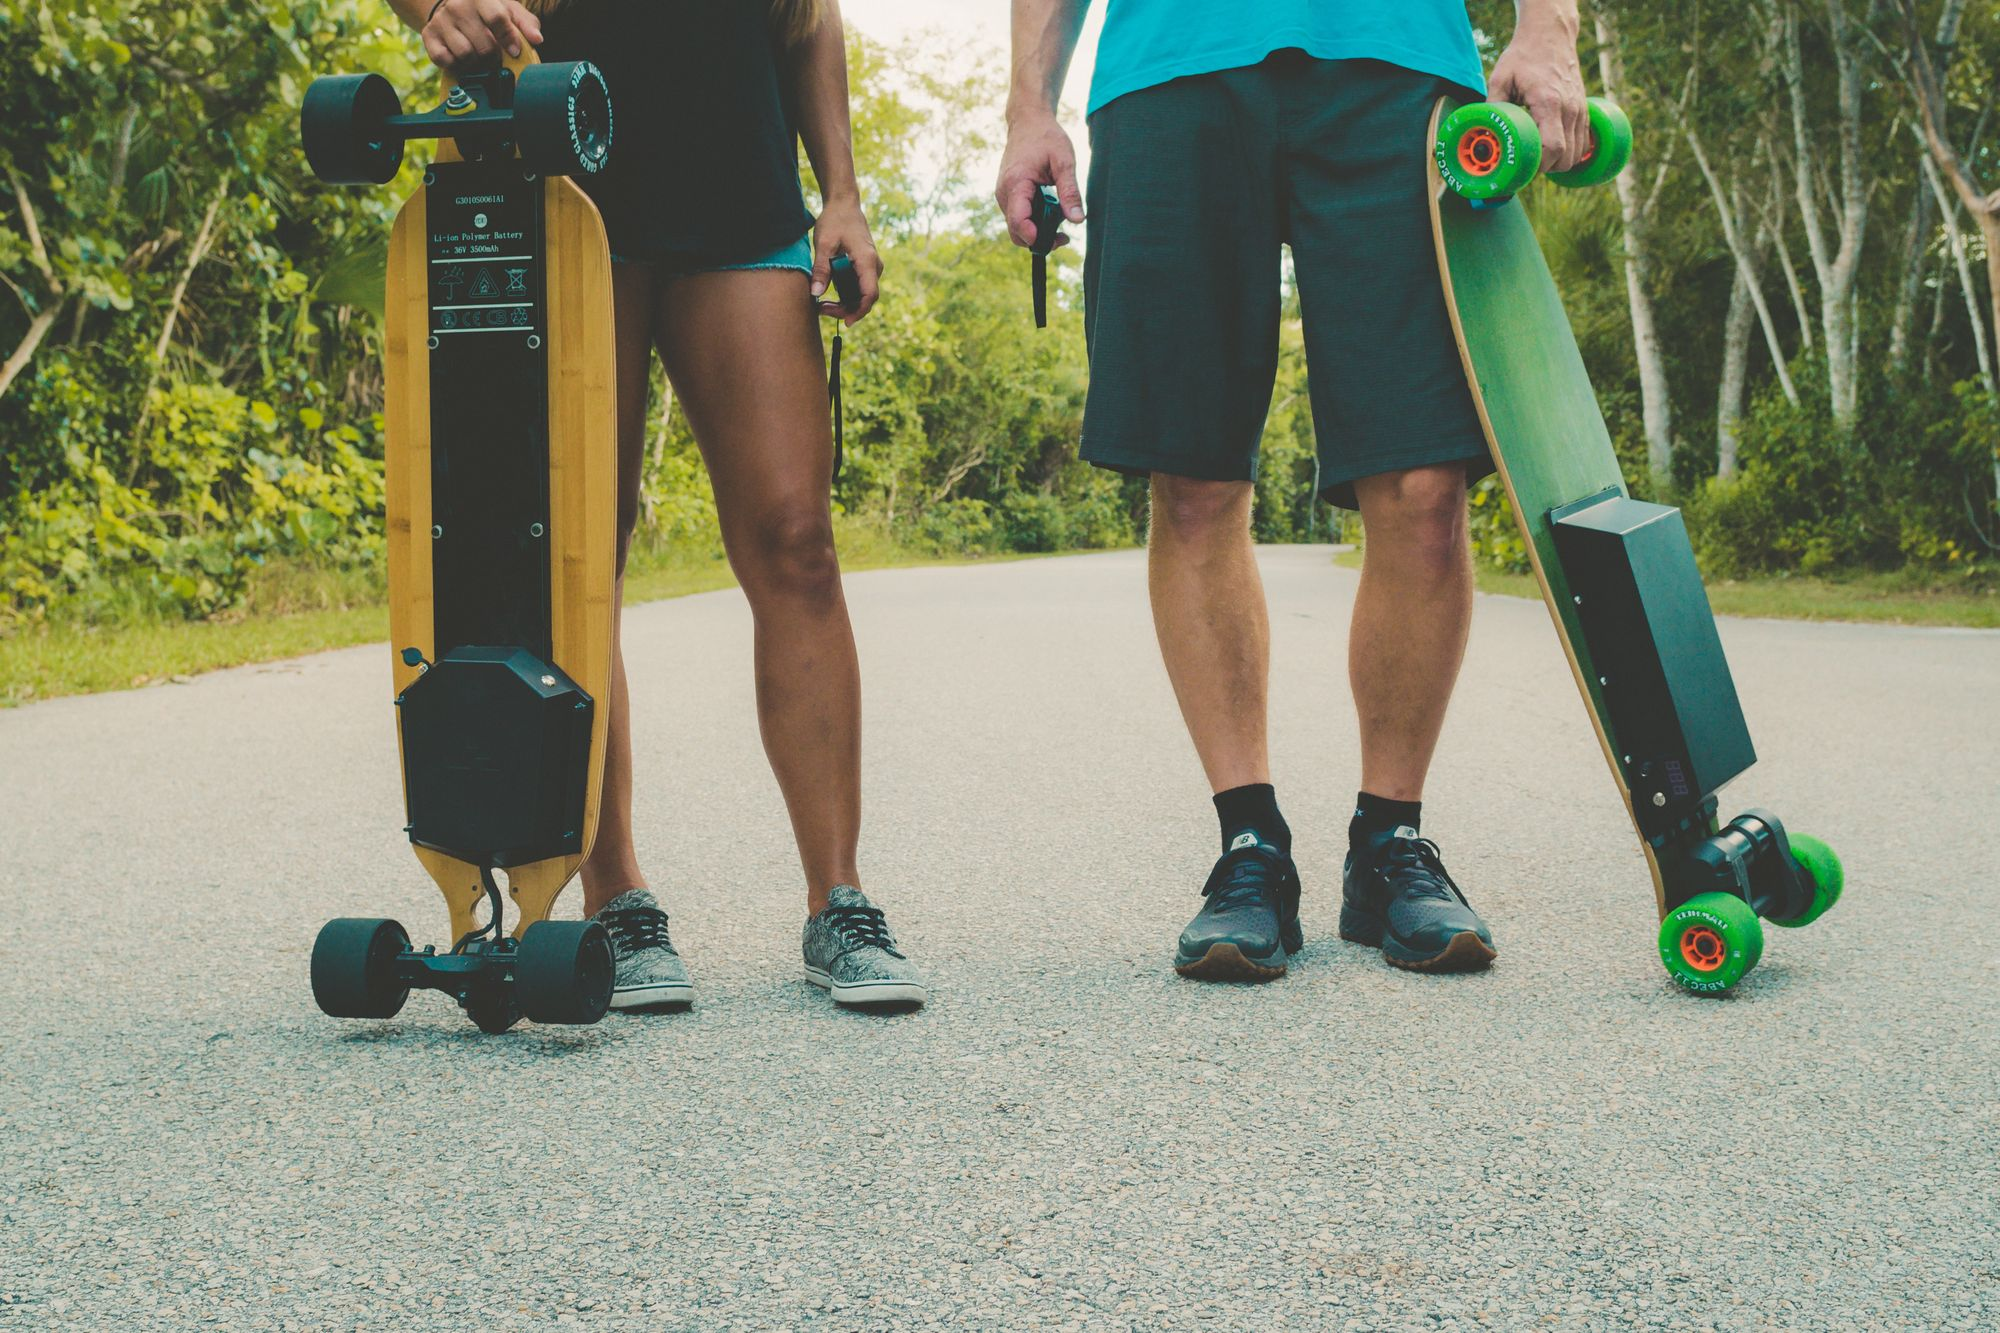 5 best electric skateboards to buy in 2021